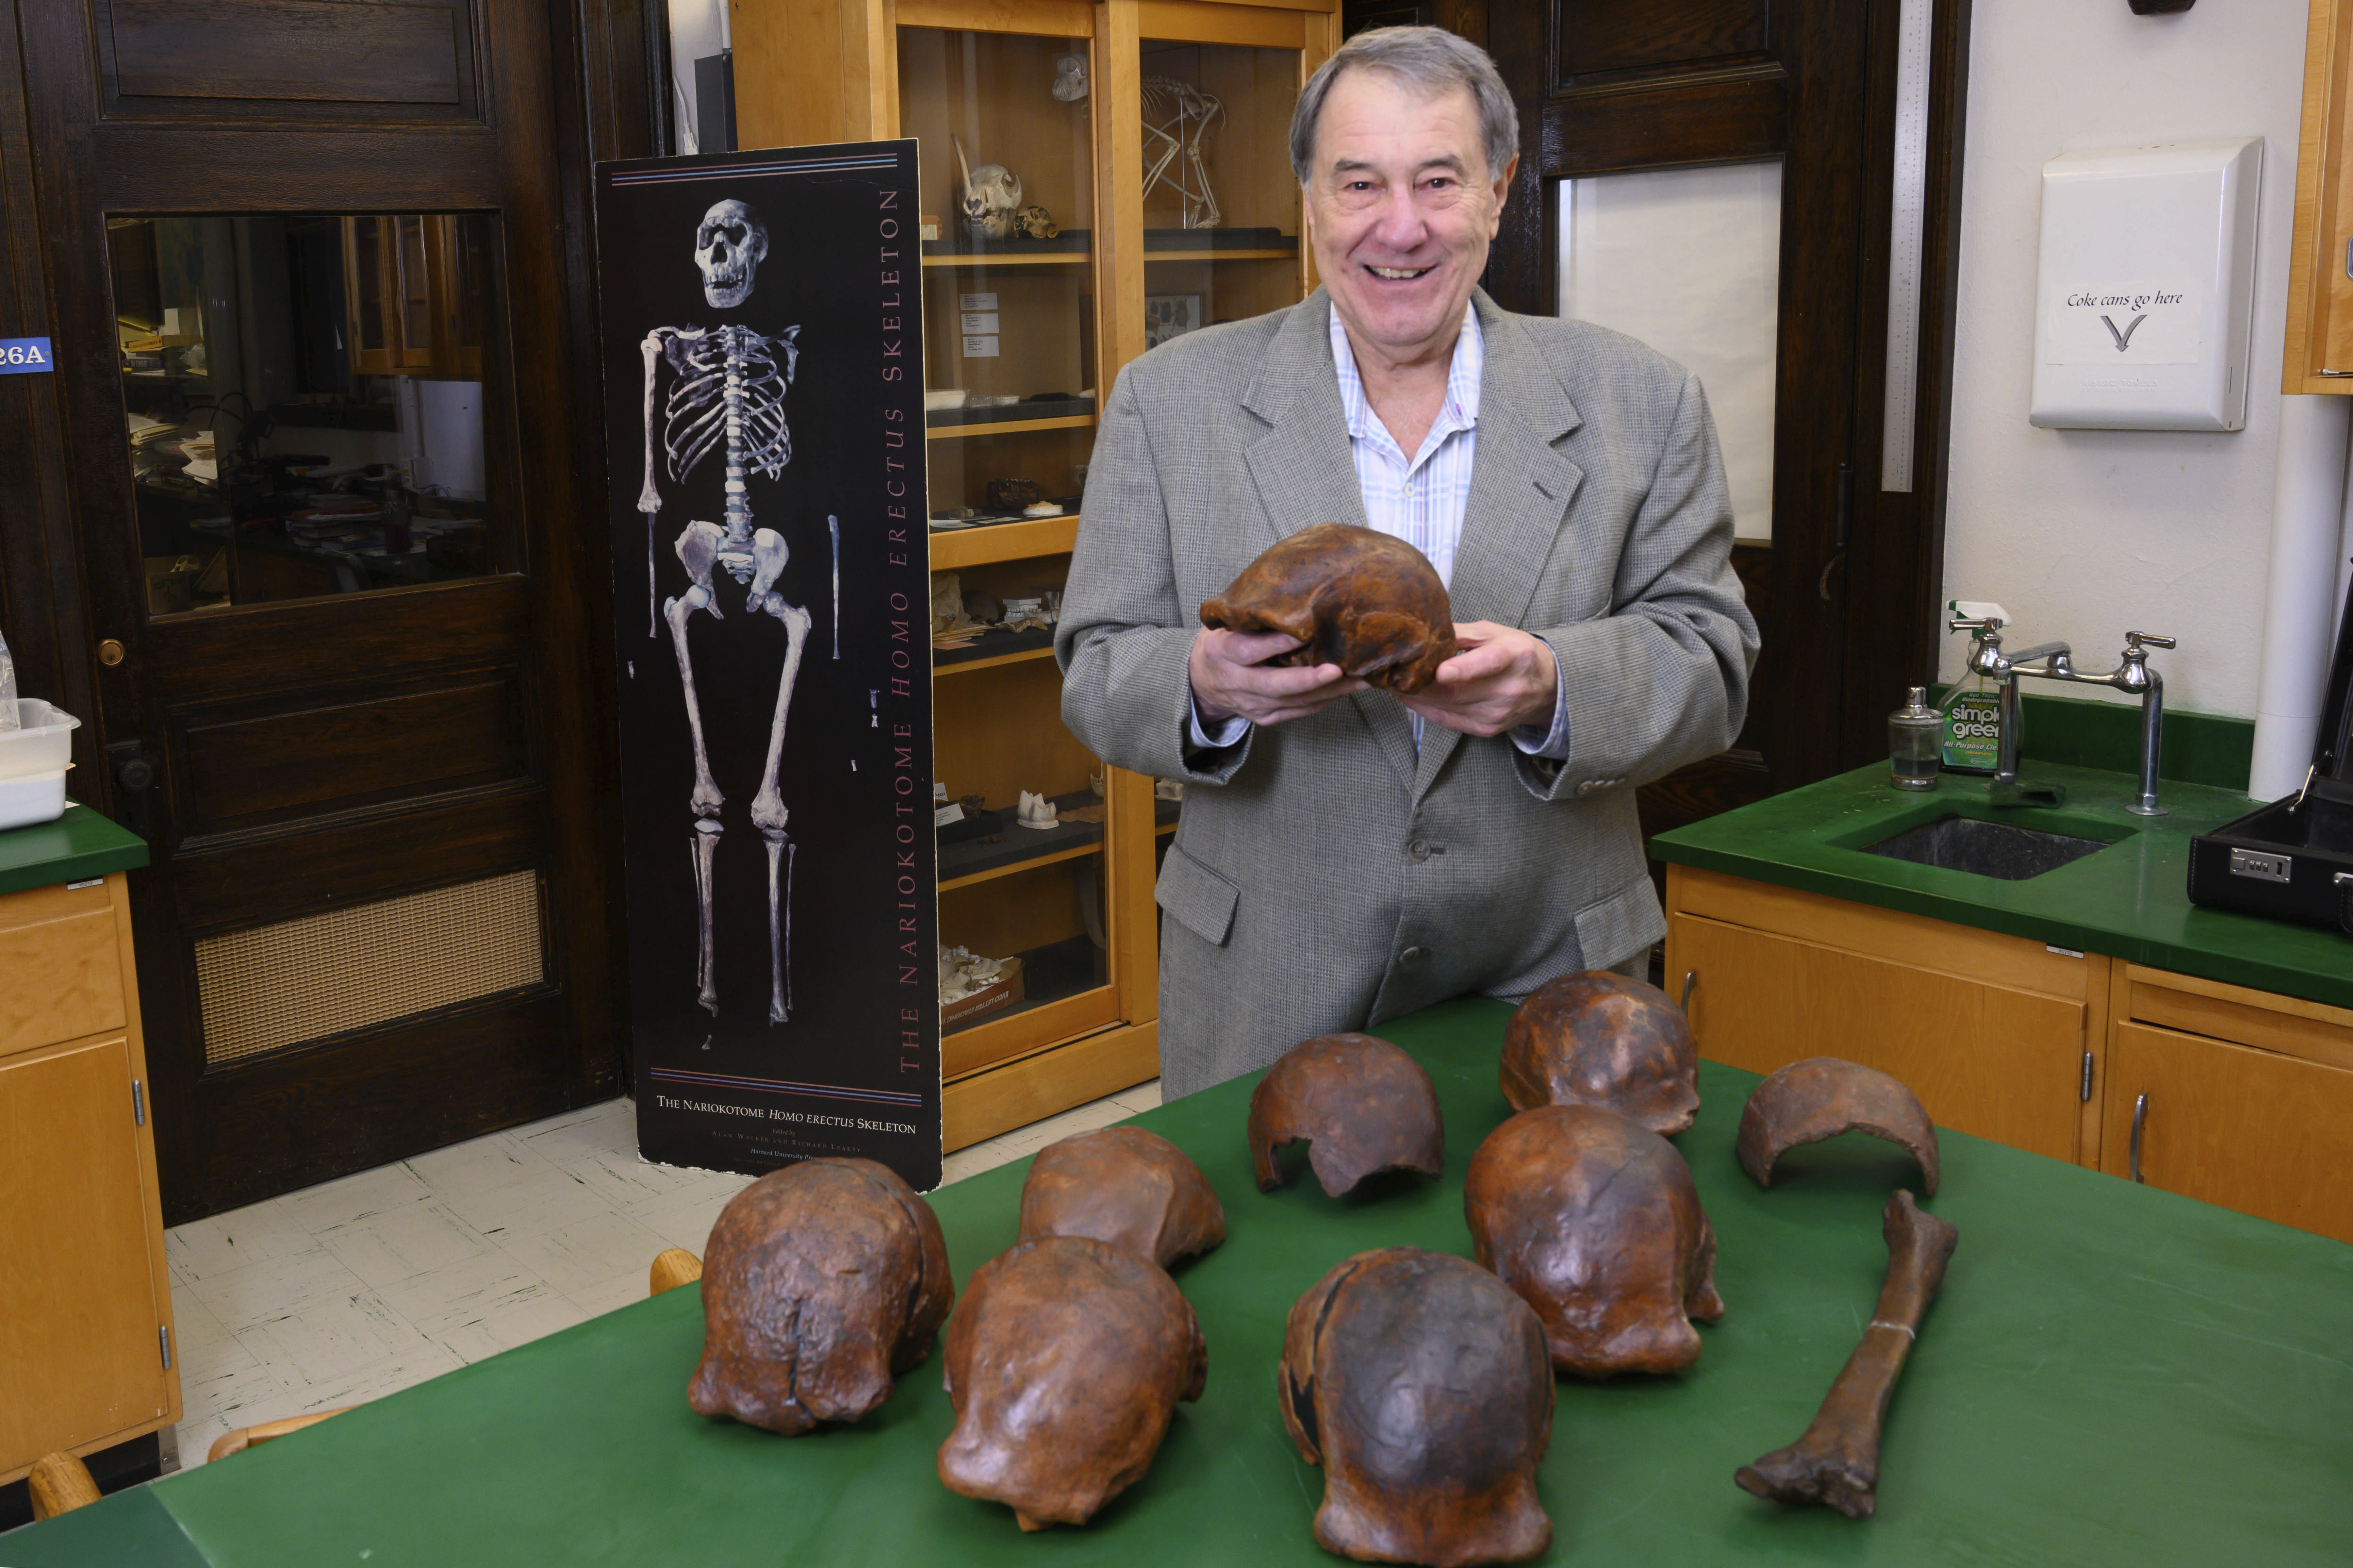 Homo erectus may have been wiped out by climate change, scientists say